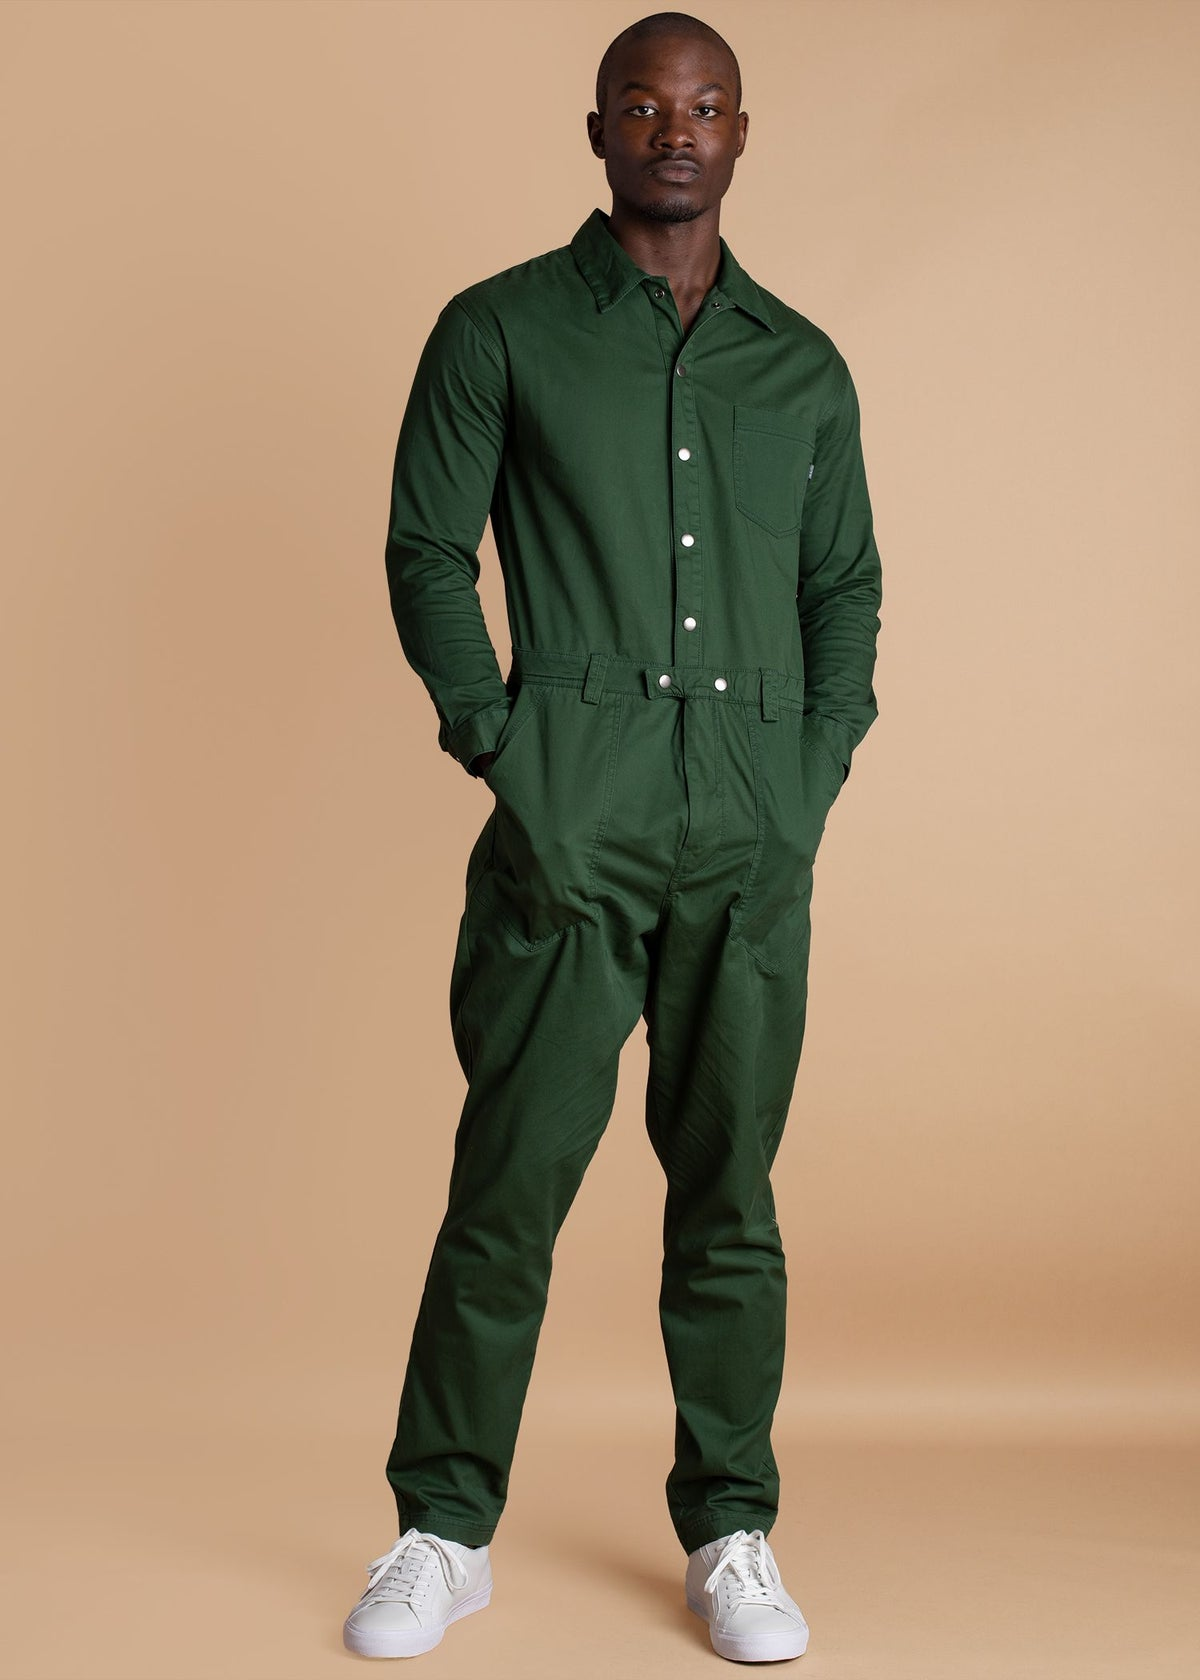 ALC Green Long Sleeve Boiler Suit